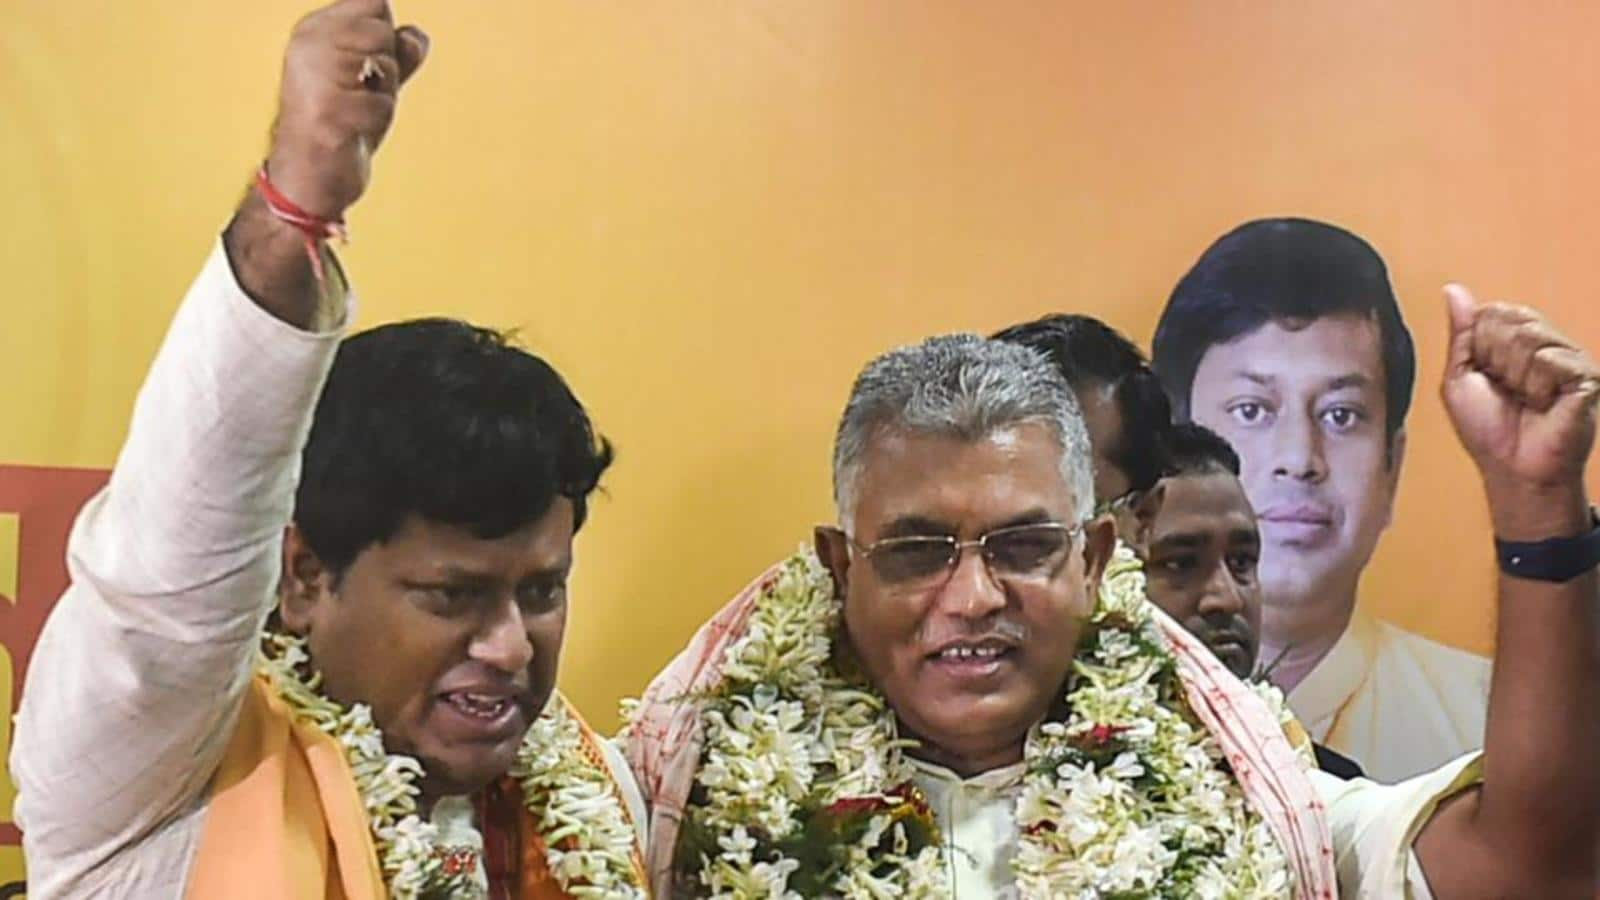 Mamata's mosque visit insult to Islam, says Bengal BJP's new boss; cleric rebuts